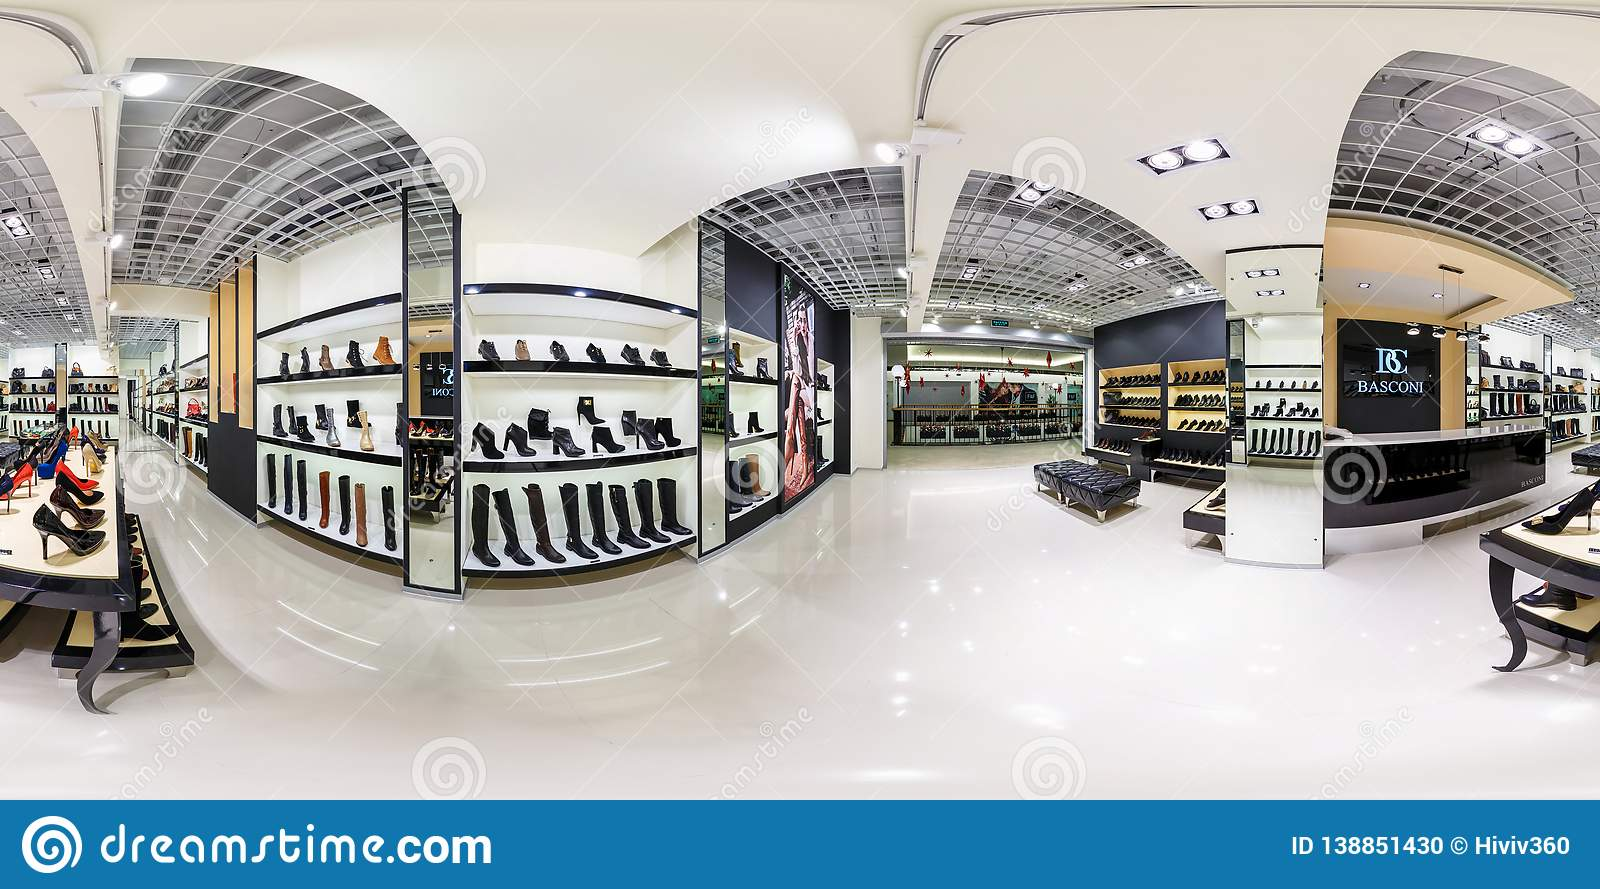 MINSK, BELARUS - DECEMBER 3, 2013: full 360 degree panorama in equirectangular spherical projection in shop of stylish shoes, VR